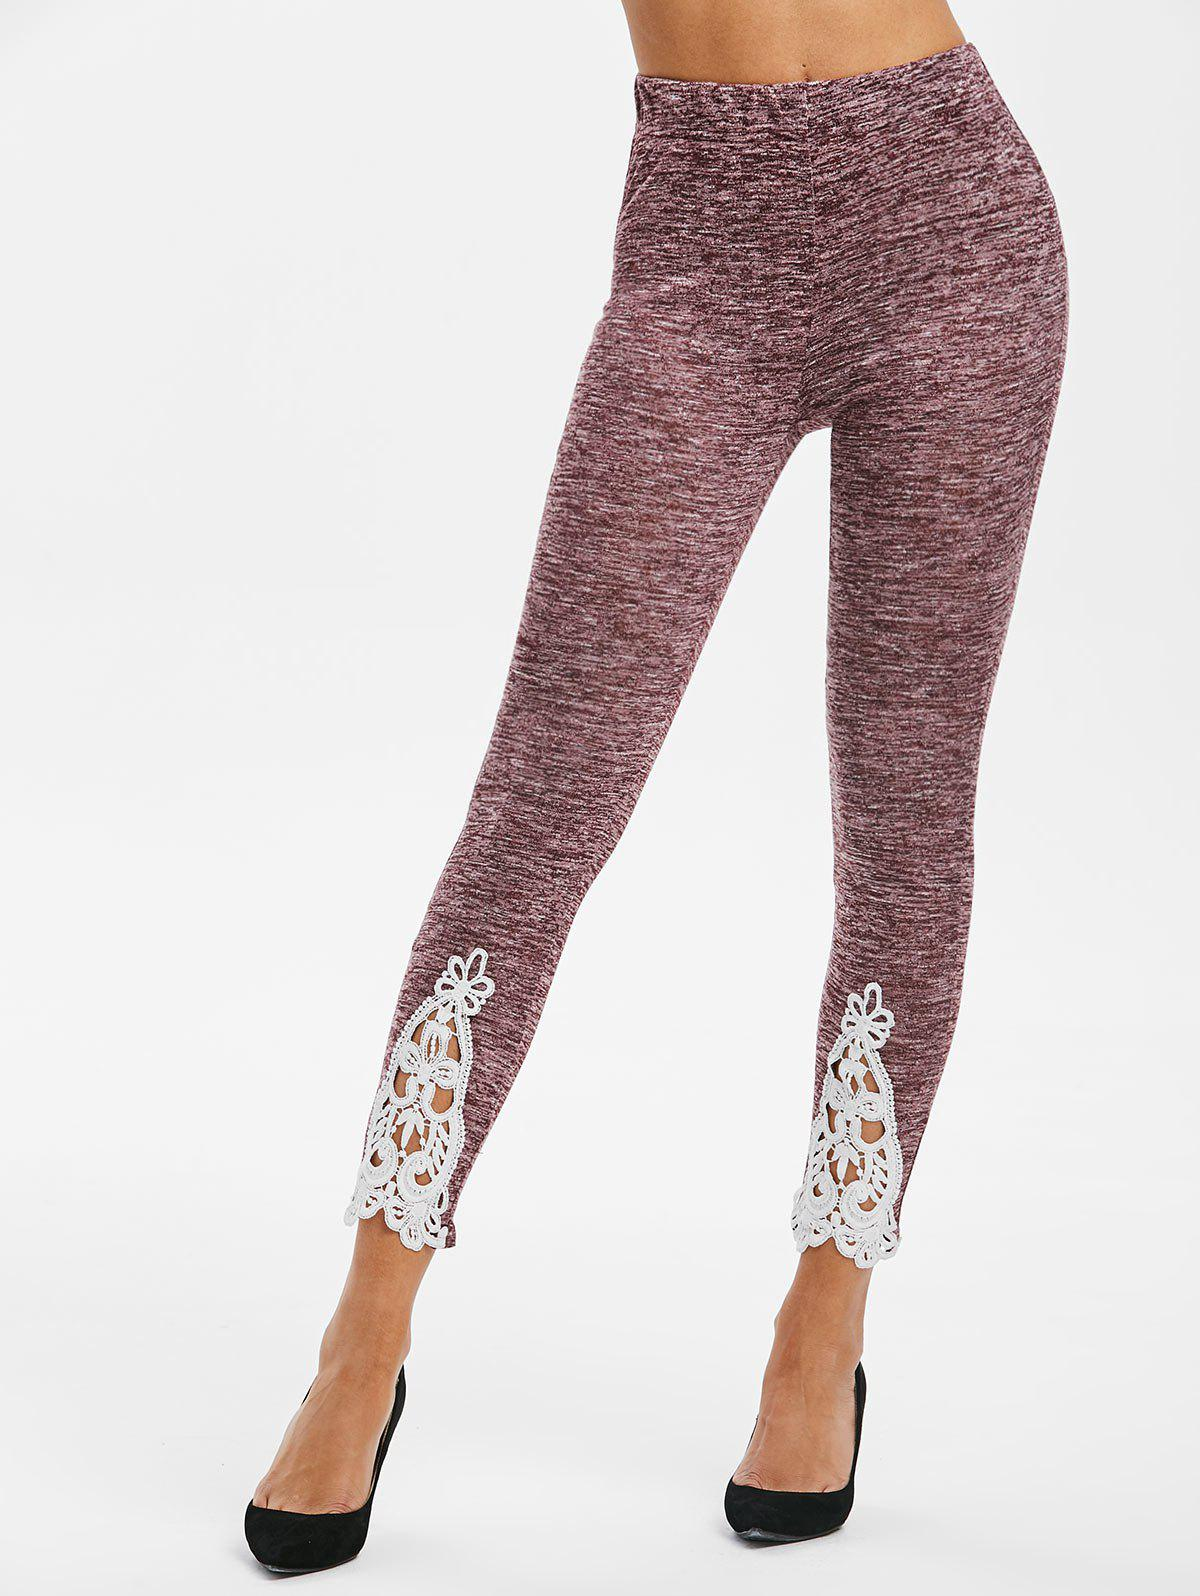 Lace Insert Heathered Skinny Leggings - VELVET MAROON M